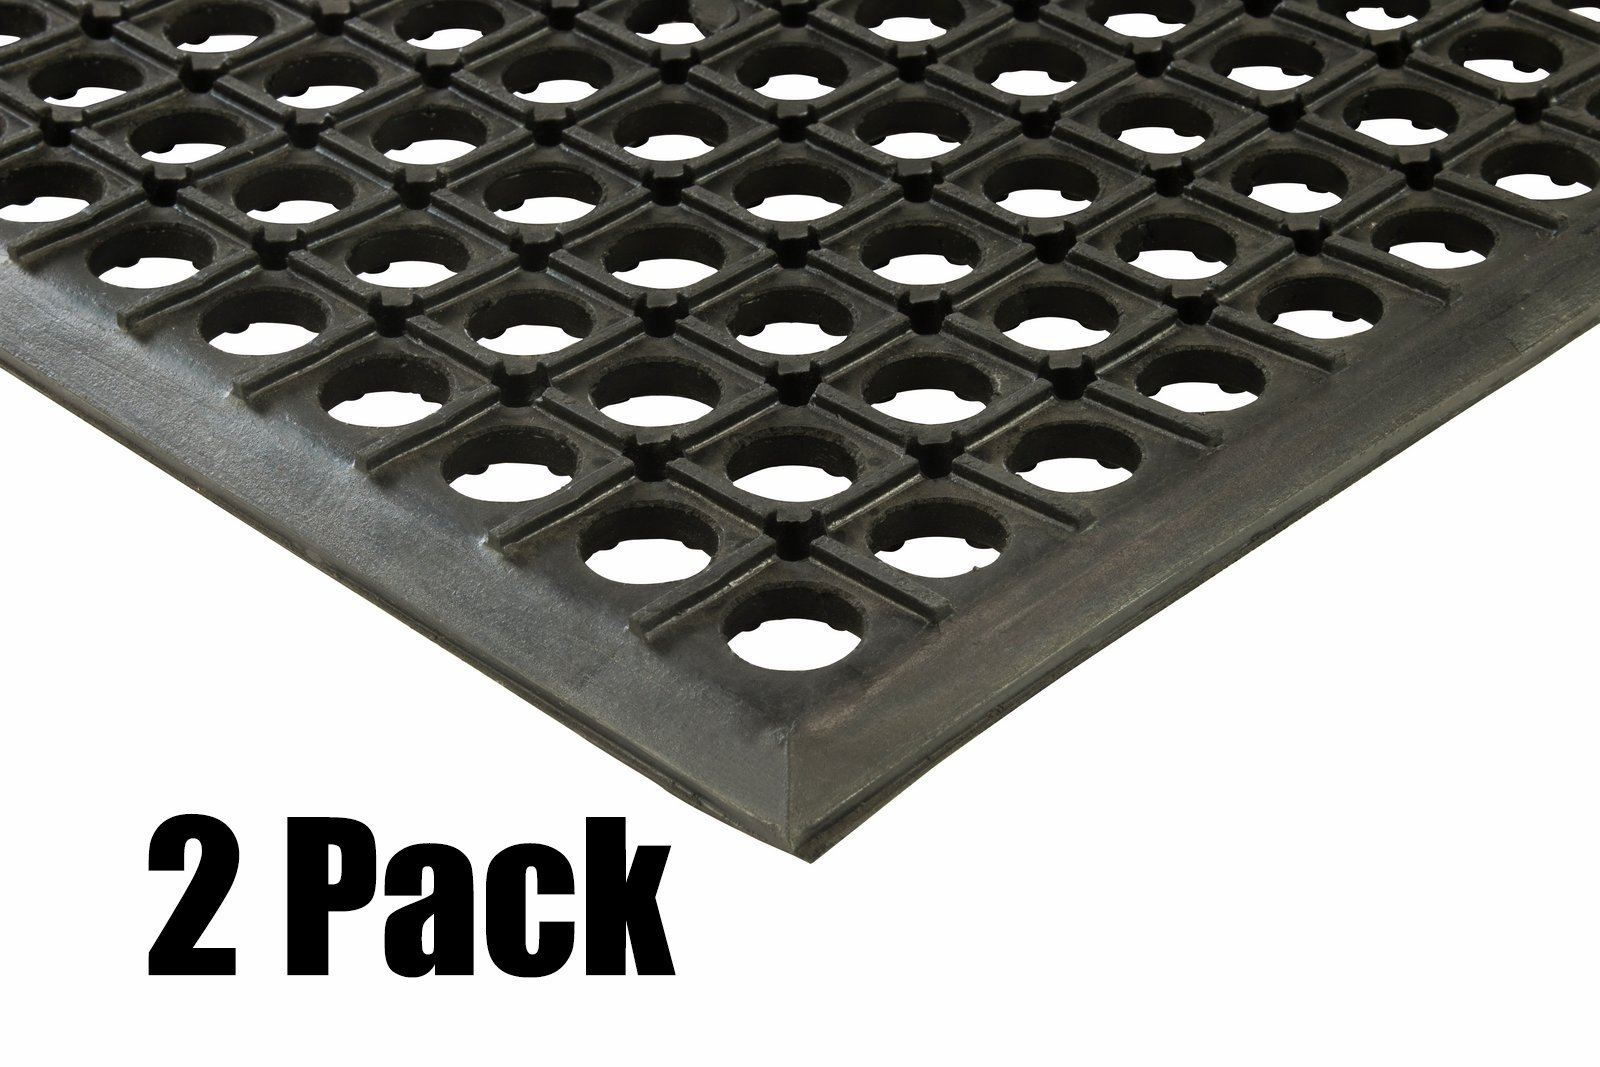 (2) Erie Tools 3x5 Rubber Drainage Floor Mat 36'' x 60'' Anti-Fatigue Anti-slip